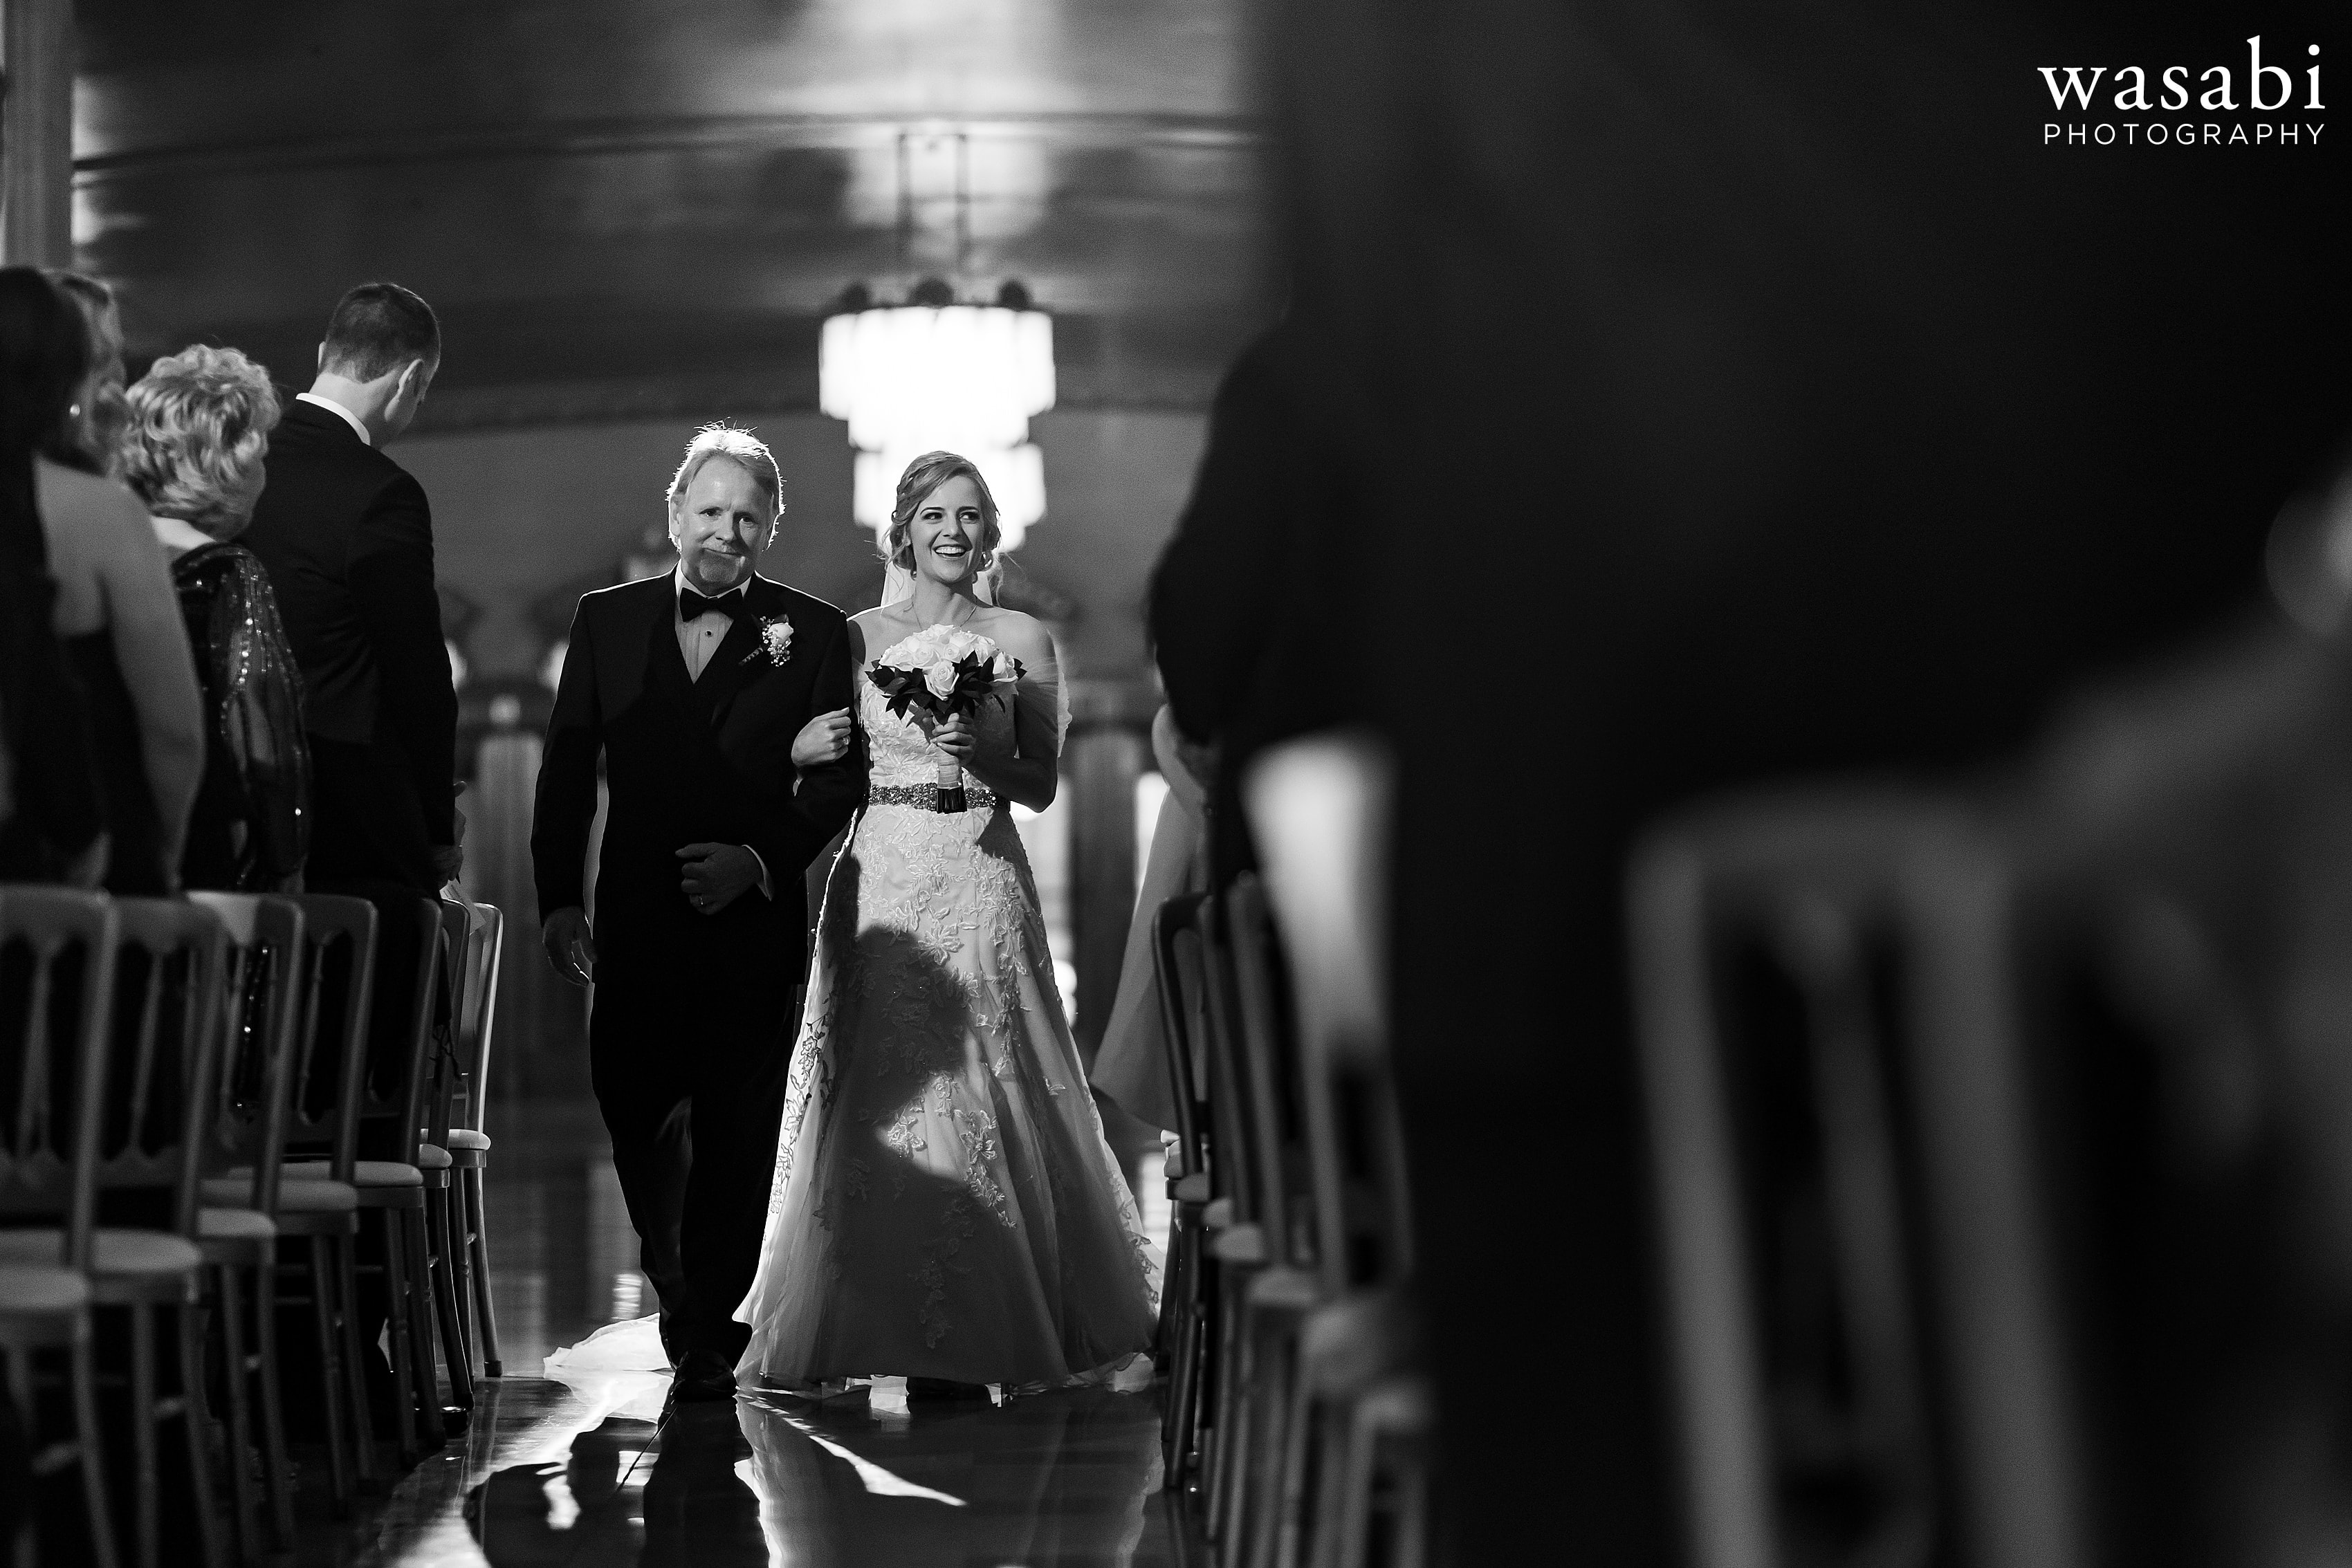 Bride and father walk down the aisle wedding at Civic Opera House in Chicago